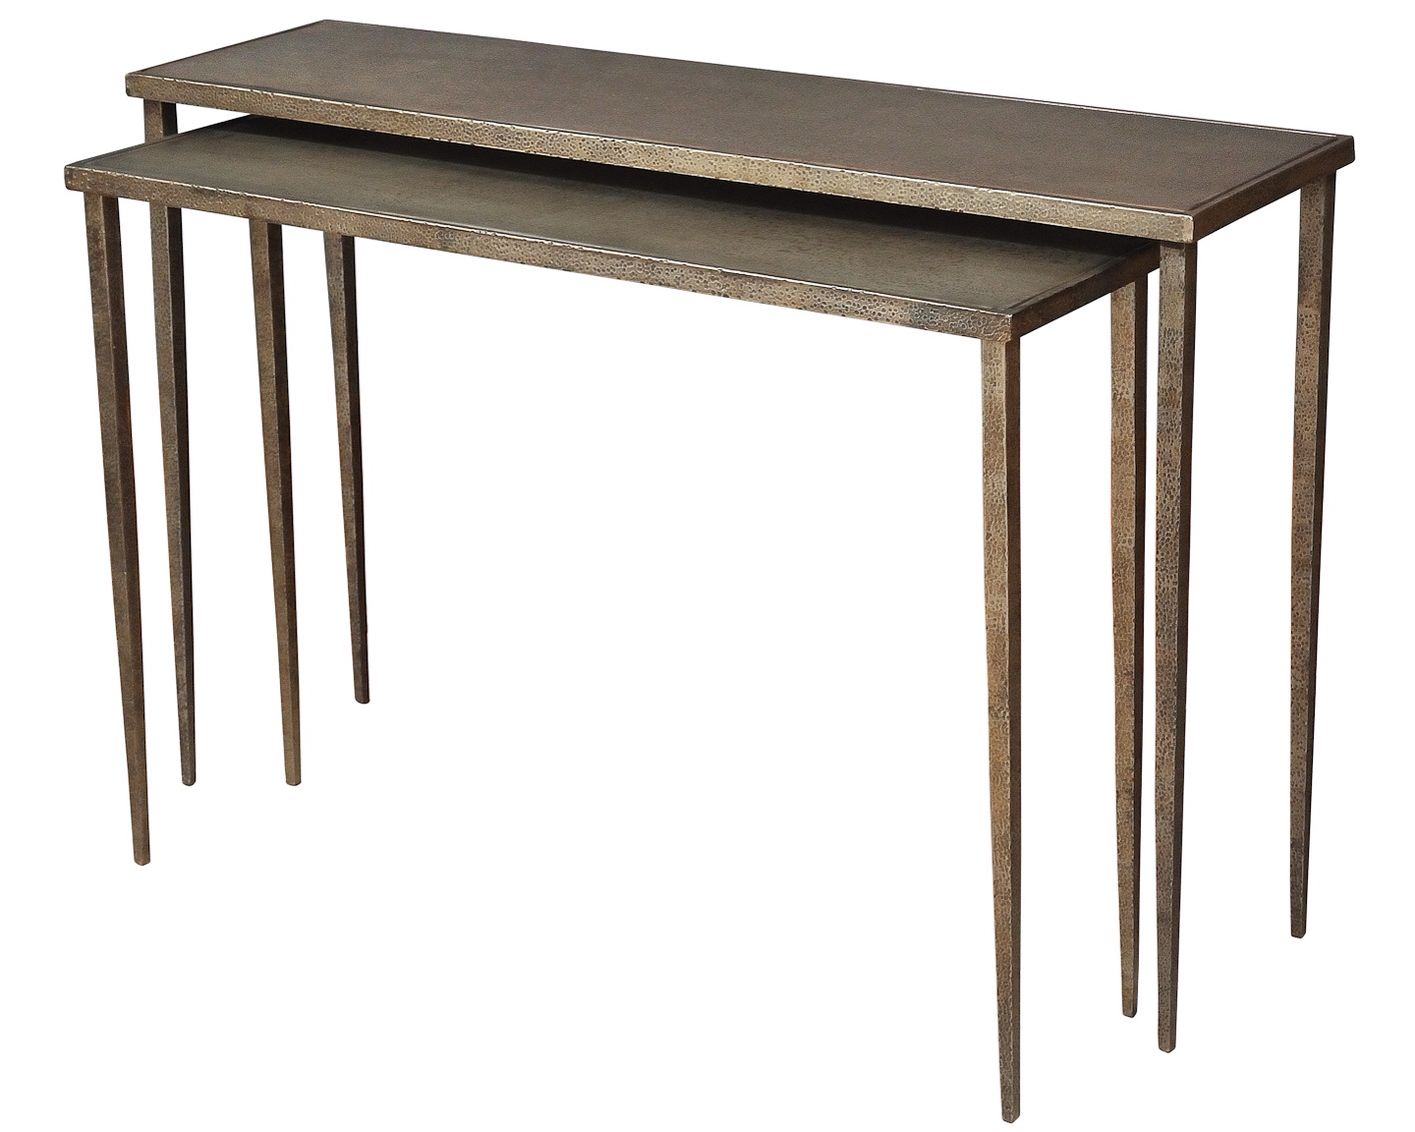 Hammered Sheet Metal Console Tables | My Designs | Pinterest Regarding Parsons White Marble Top & Elm Base 48x16 Console Tables (View 12 of 30)